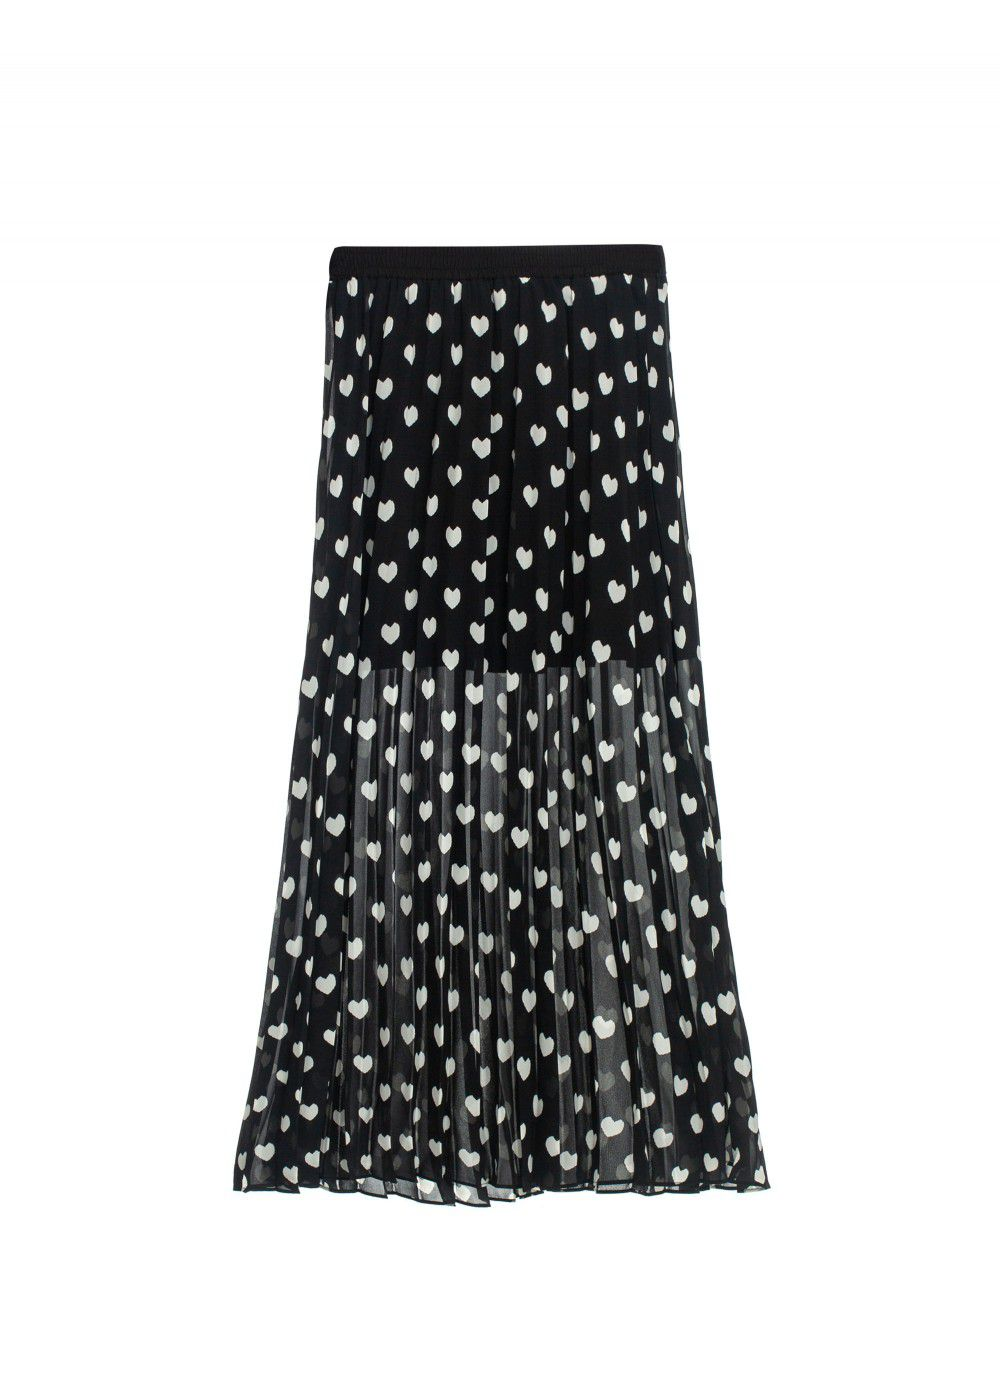 Sister Jane Black-White Pleated Skirt